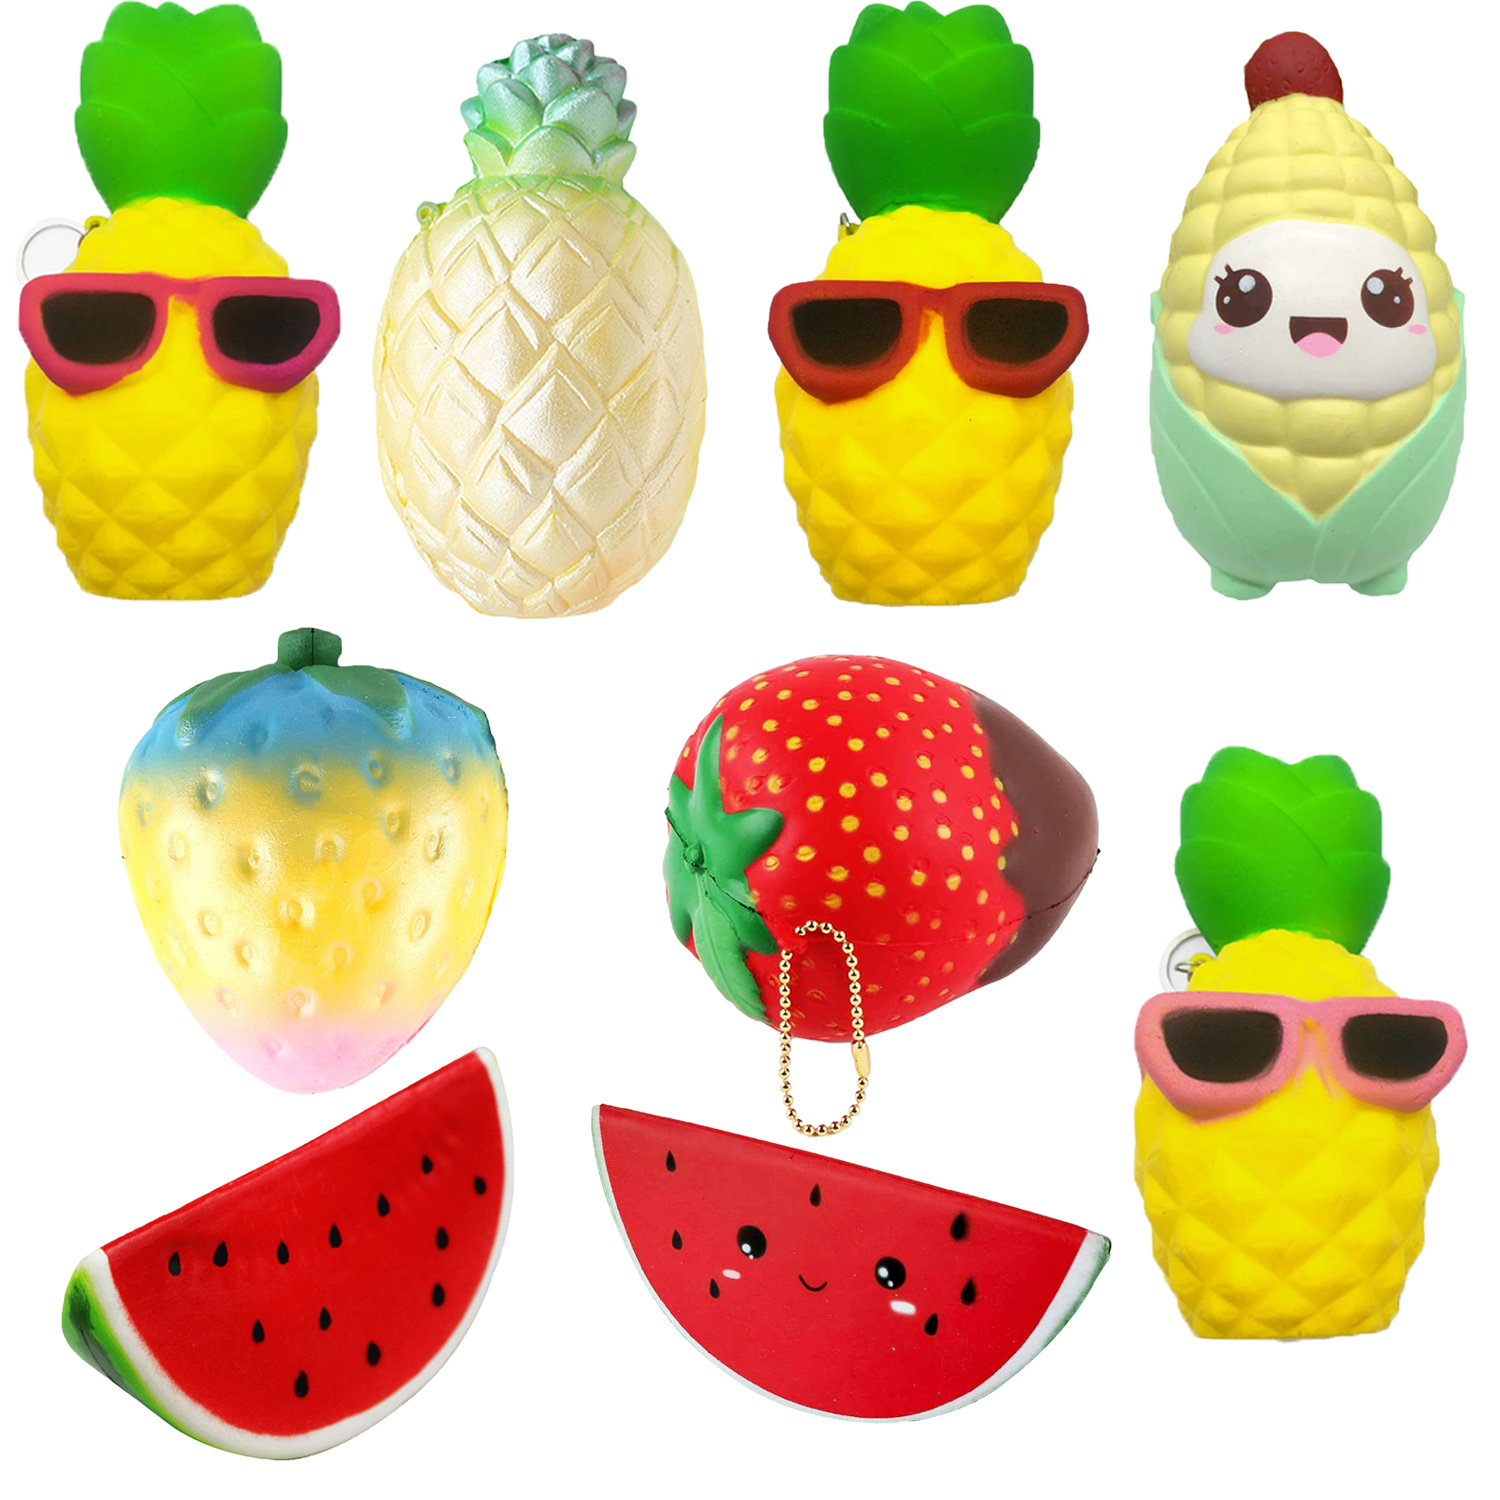 Besegad Funny Kawaii Slow Rising Rebound Squishy Food Corn Fruits Strawberry Watermelon Squishies Pineapple Relieves Stress Toys